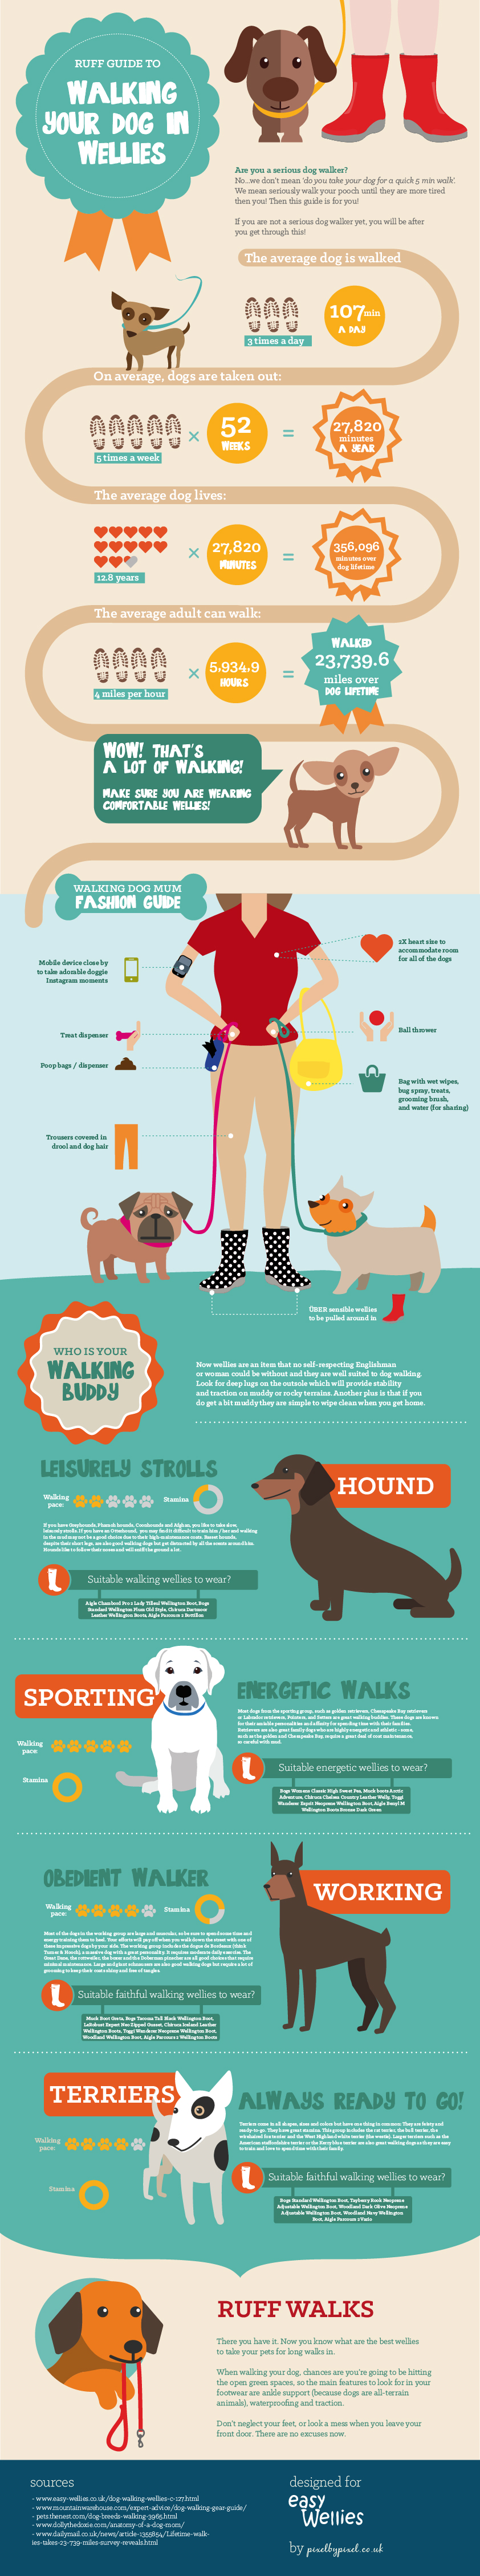 Ruff Guide to Walking Your Dog in Wellies by Easy Wellies